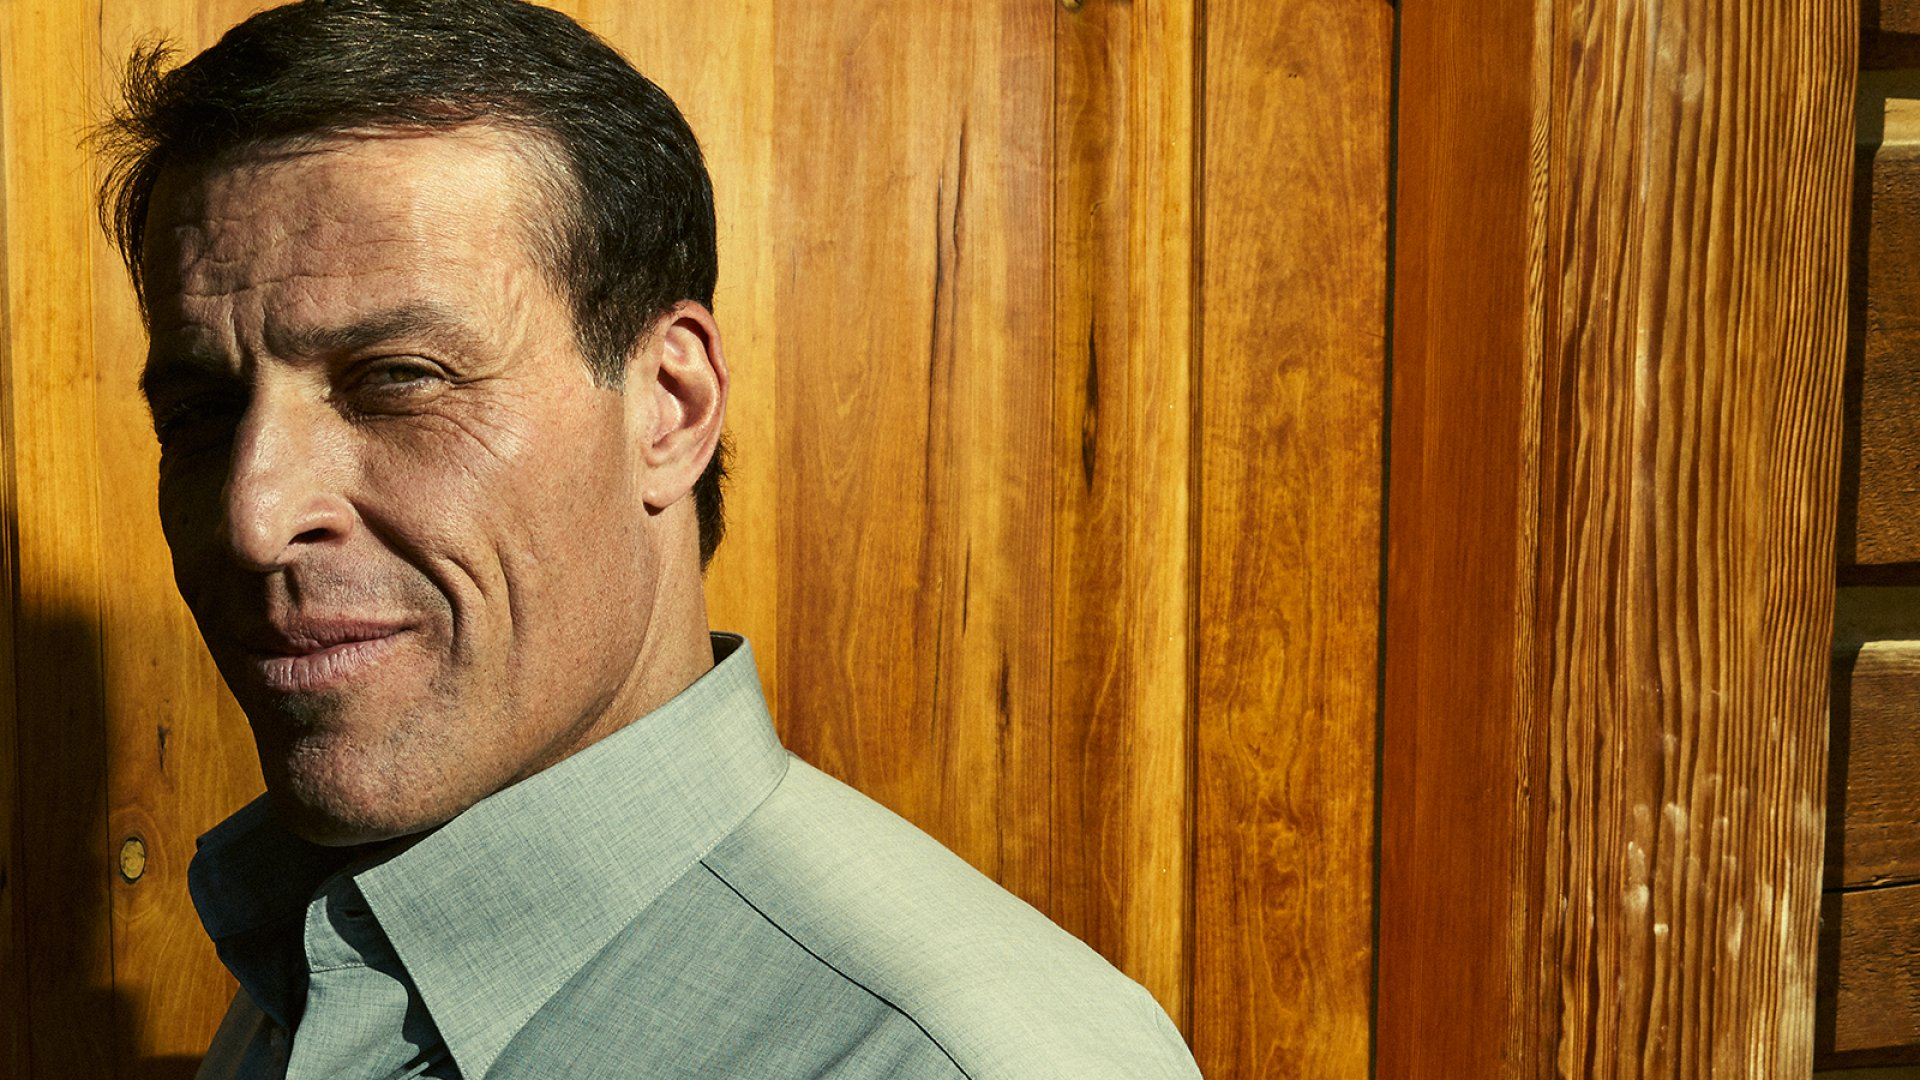 Life coach Tony Robbins has perfected the art of transforming clients into business partners.